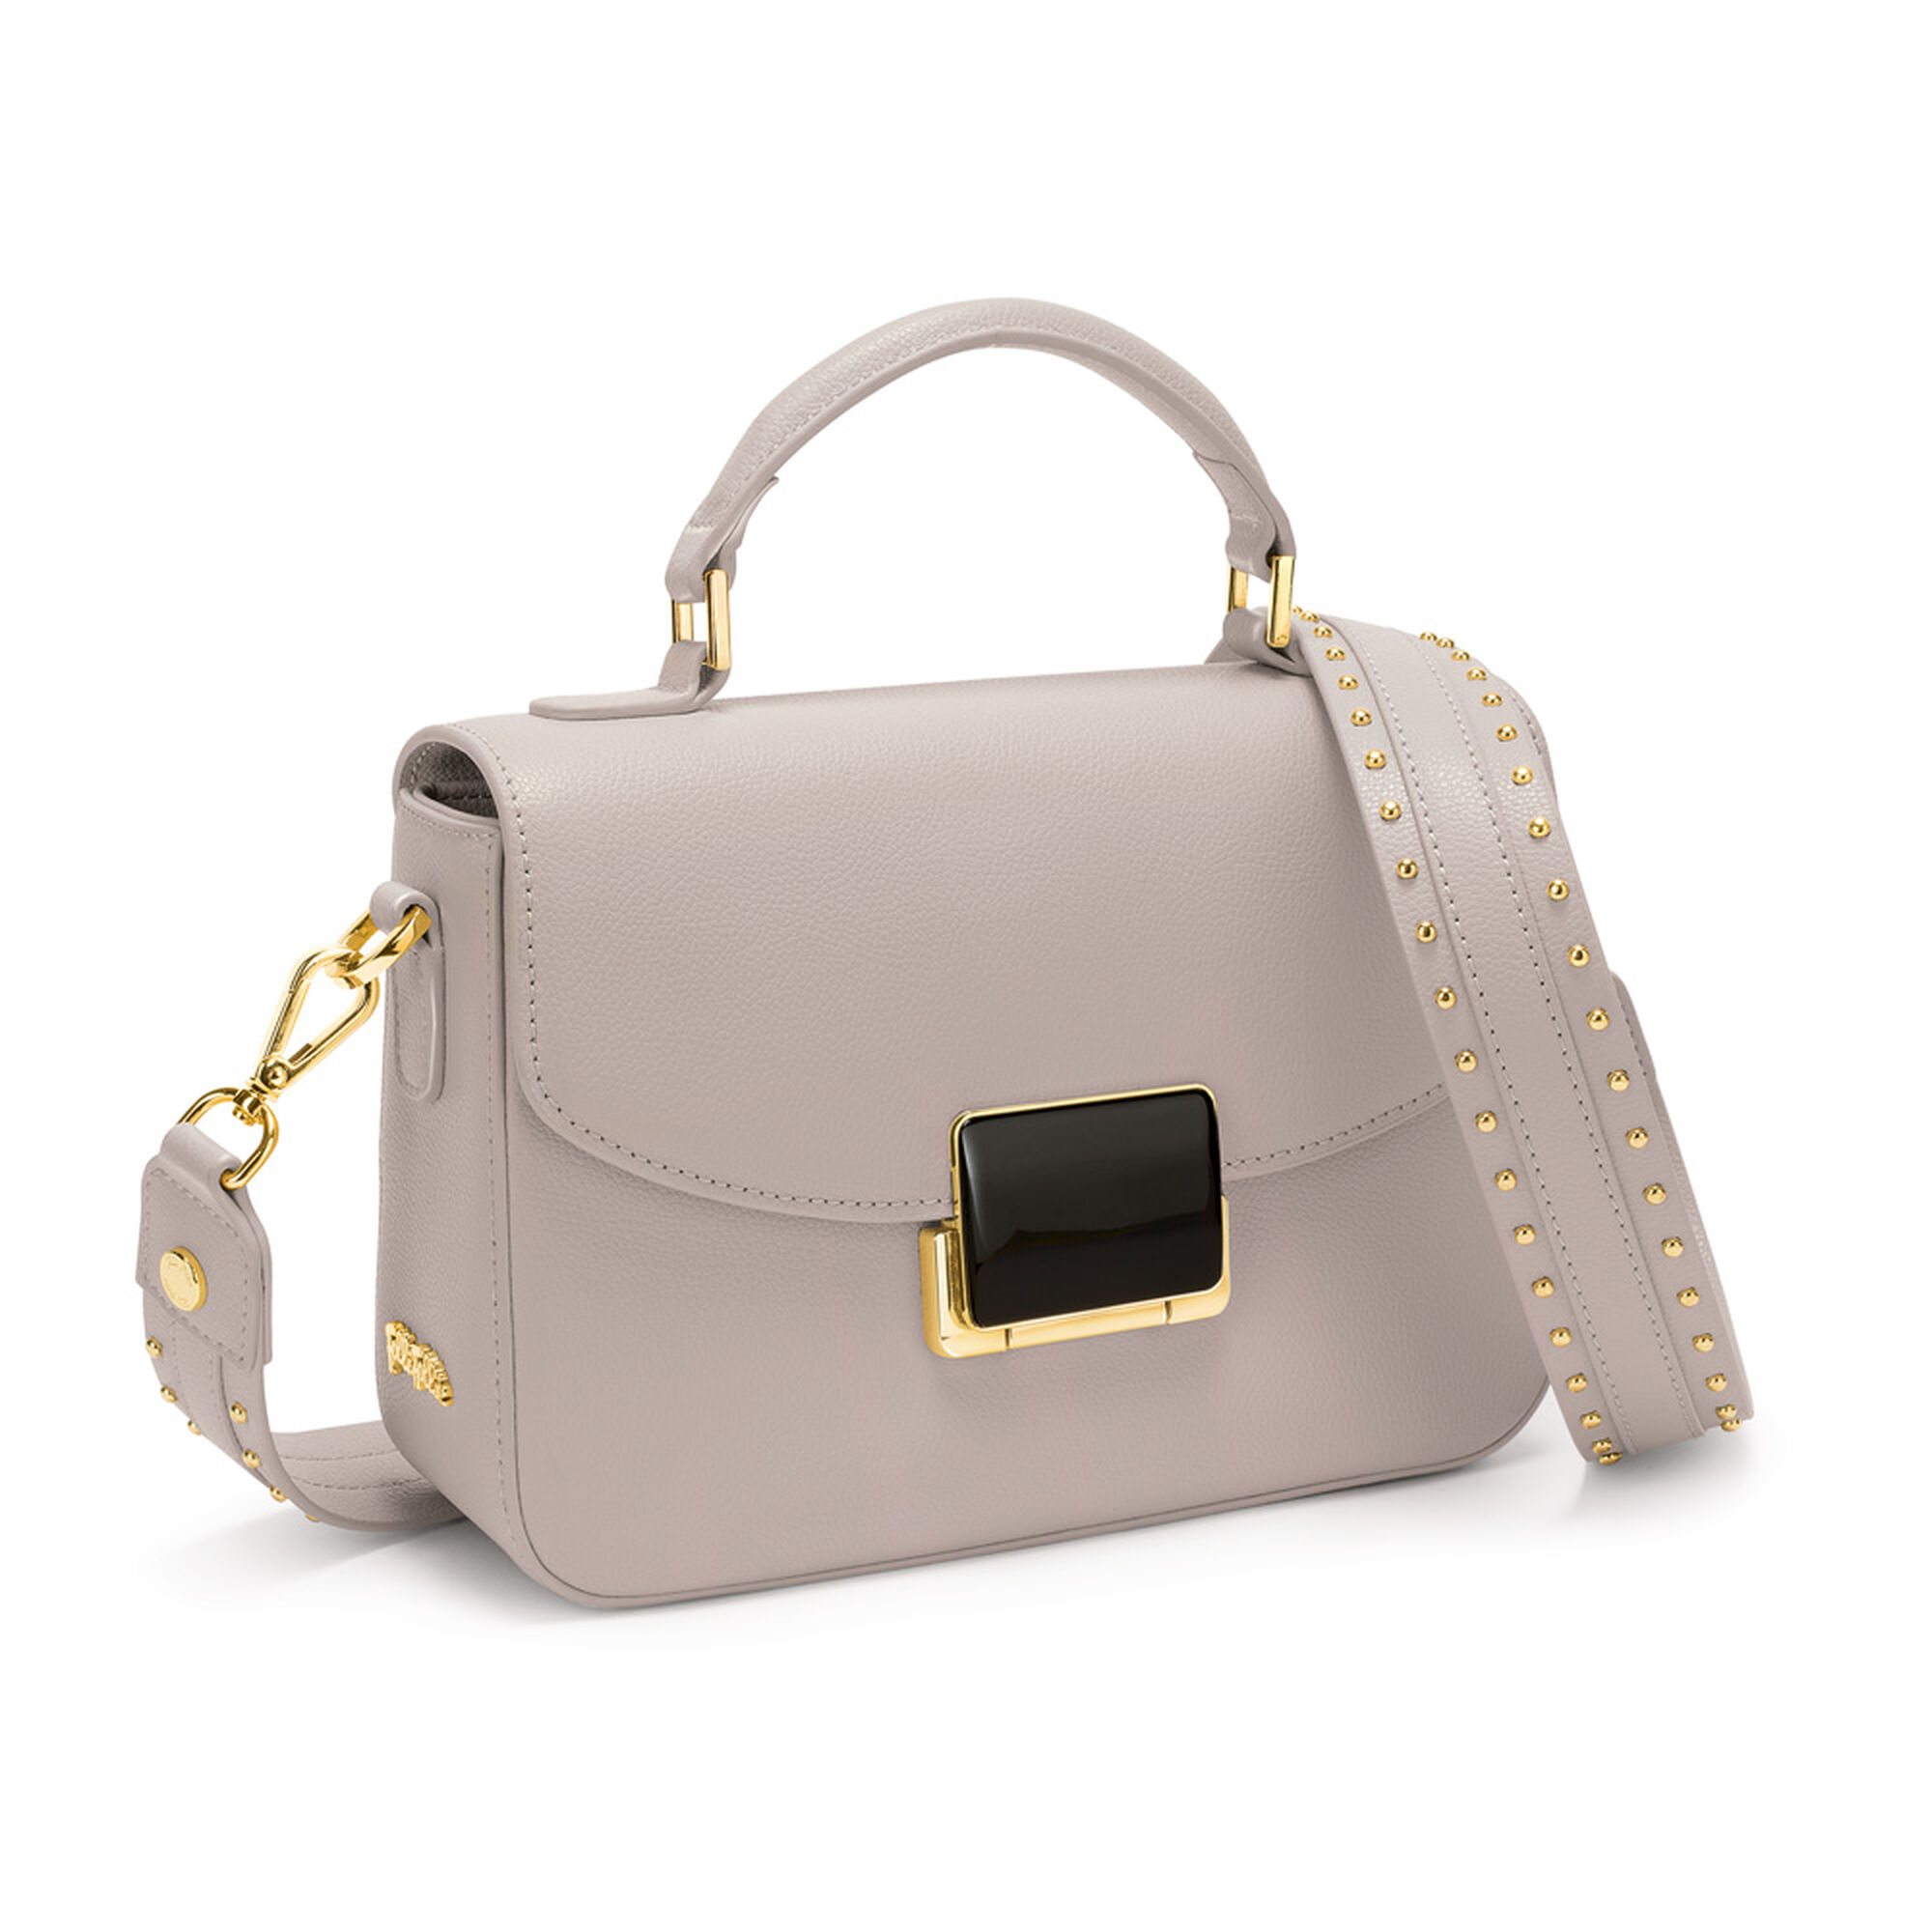 Folli Follie LADY RIVIERA BAG